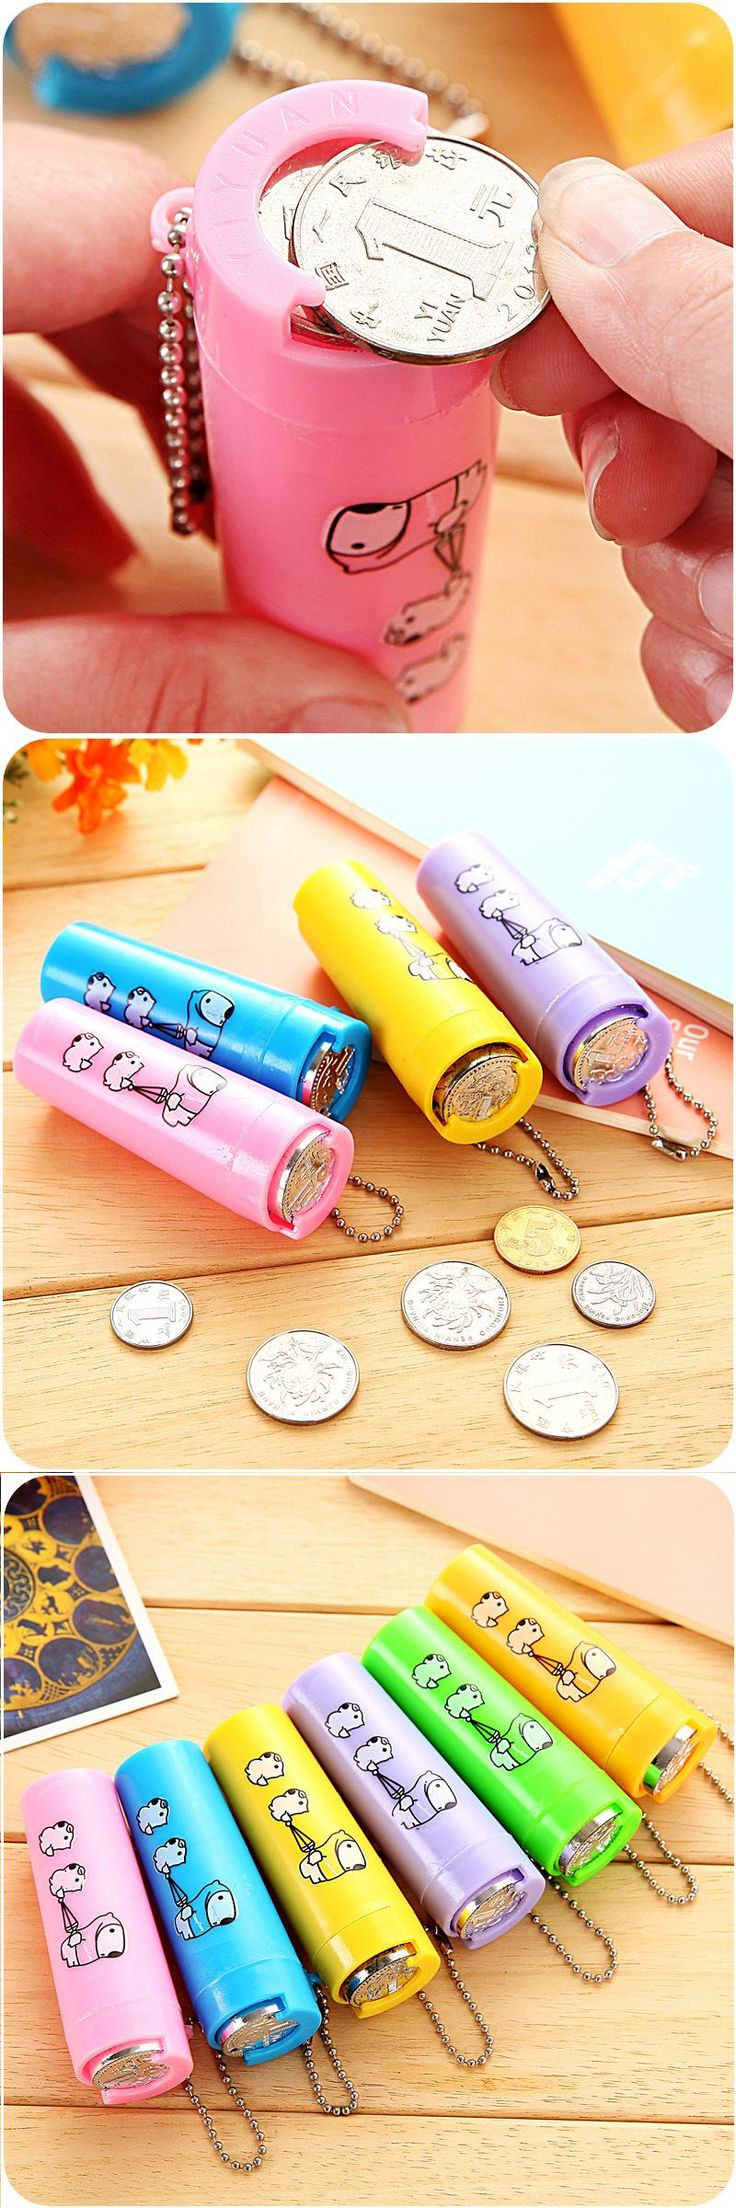 [Visit to Buy] New 2 Pcs/lot Easy Tube Change Purse Piggy Bank Coin Hopper Can Be Loaded Storage Box Free Shipping  #Advertisement